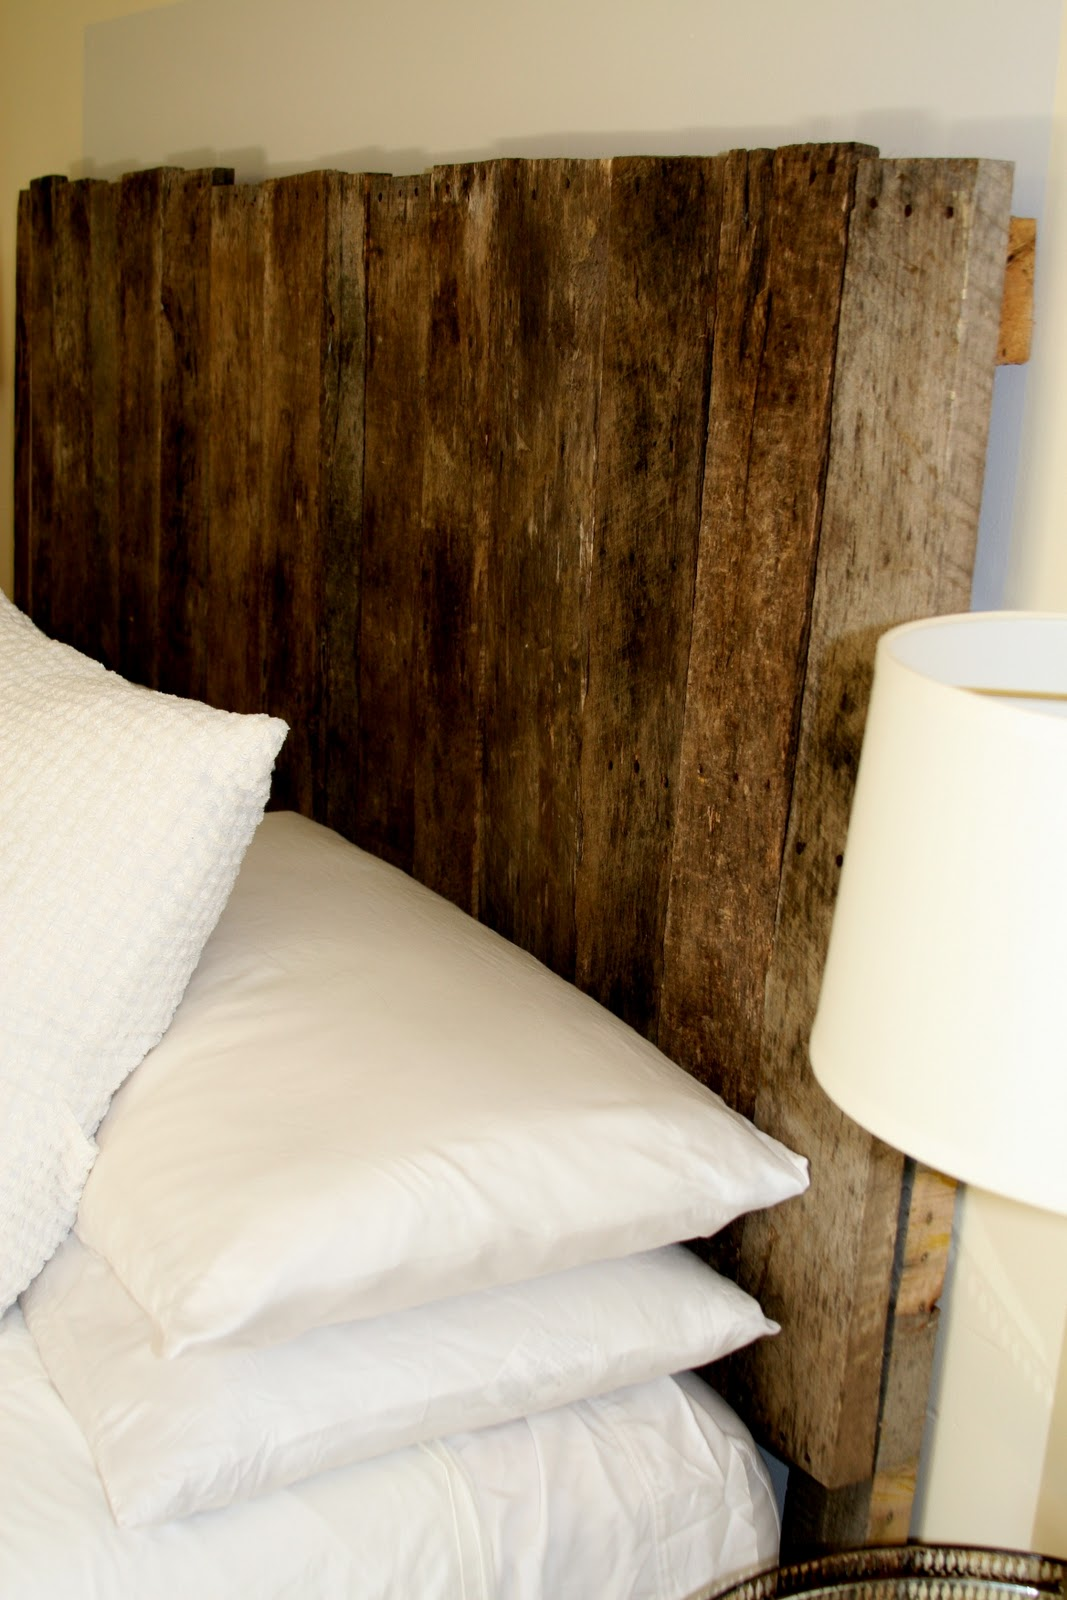 Sprig pallet headboard for Cool bed head ideas